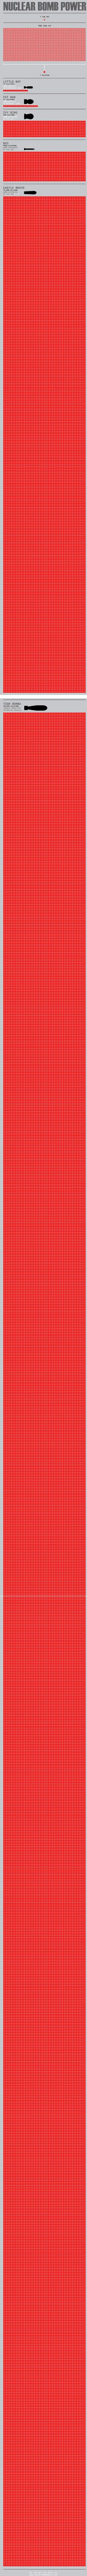 Nuclear bombs infographic by Maximilien Bode